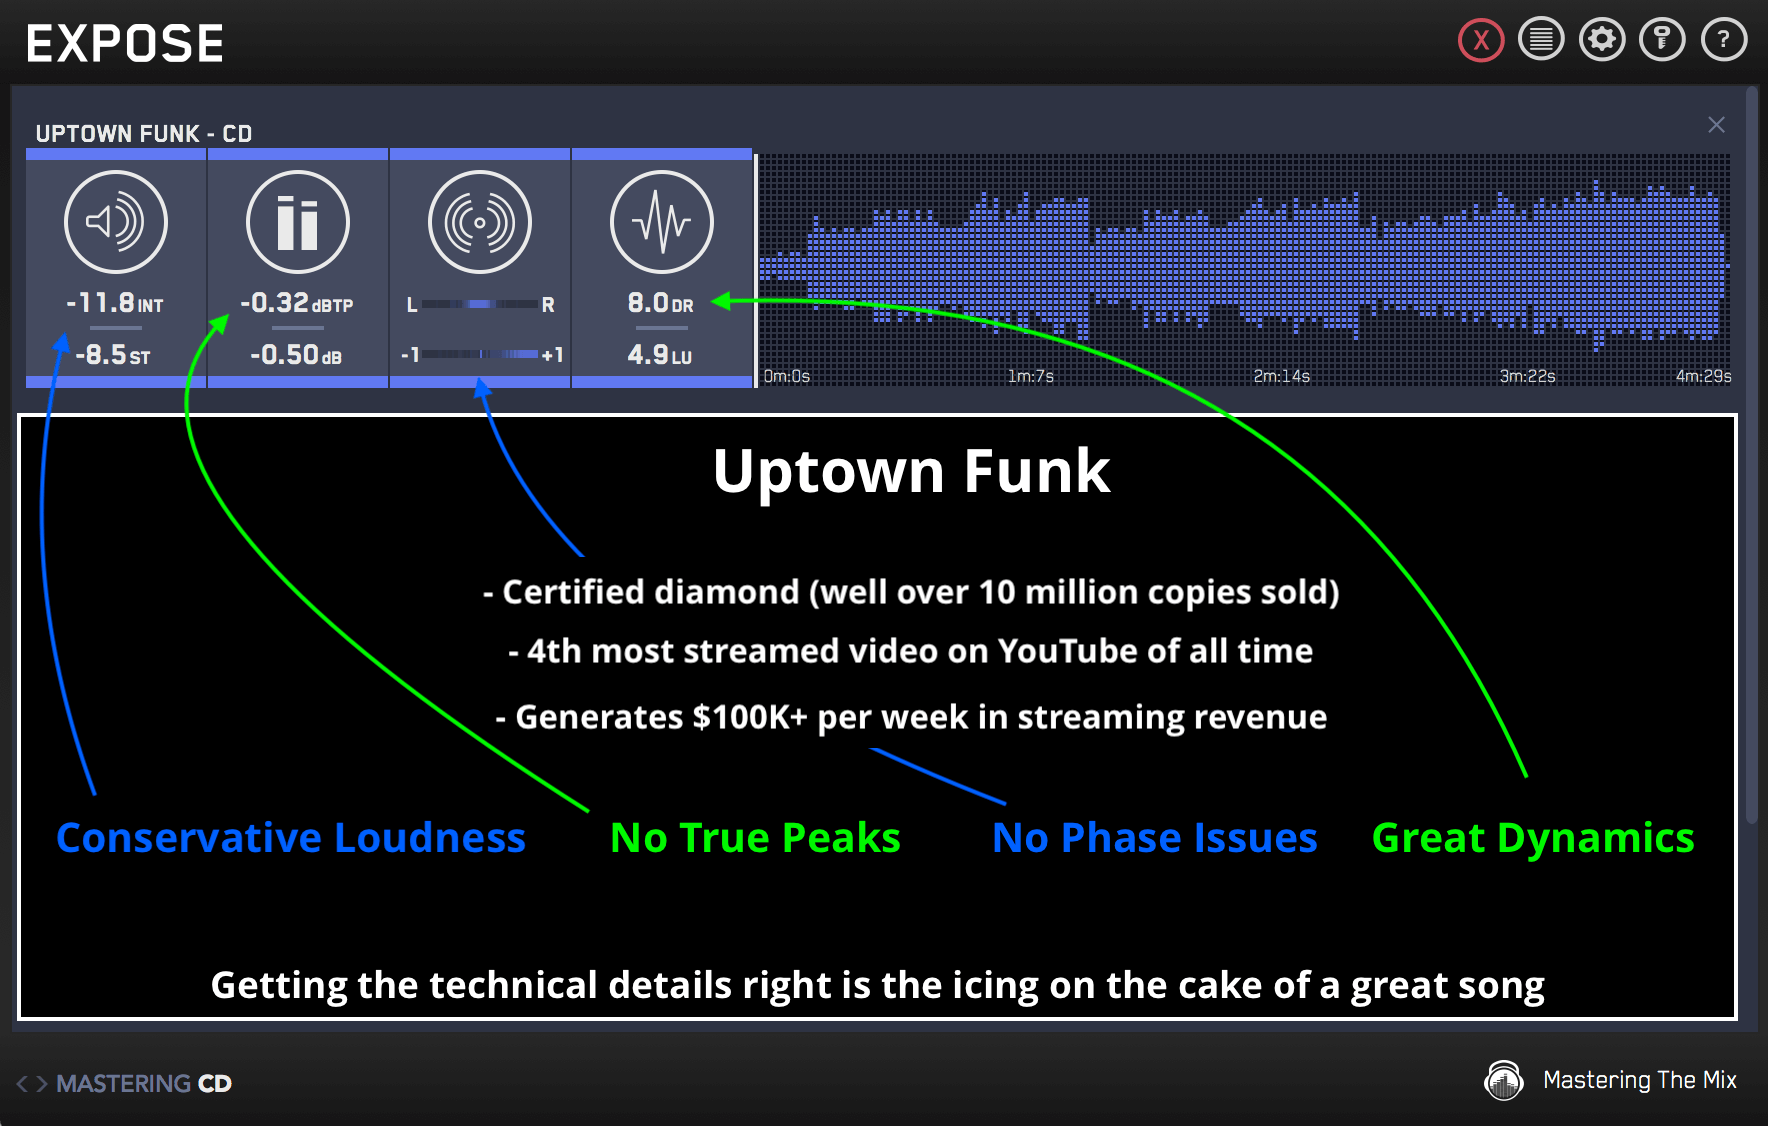 Uptown Funk technical details